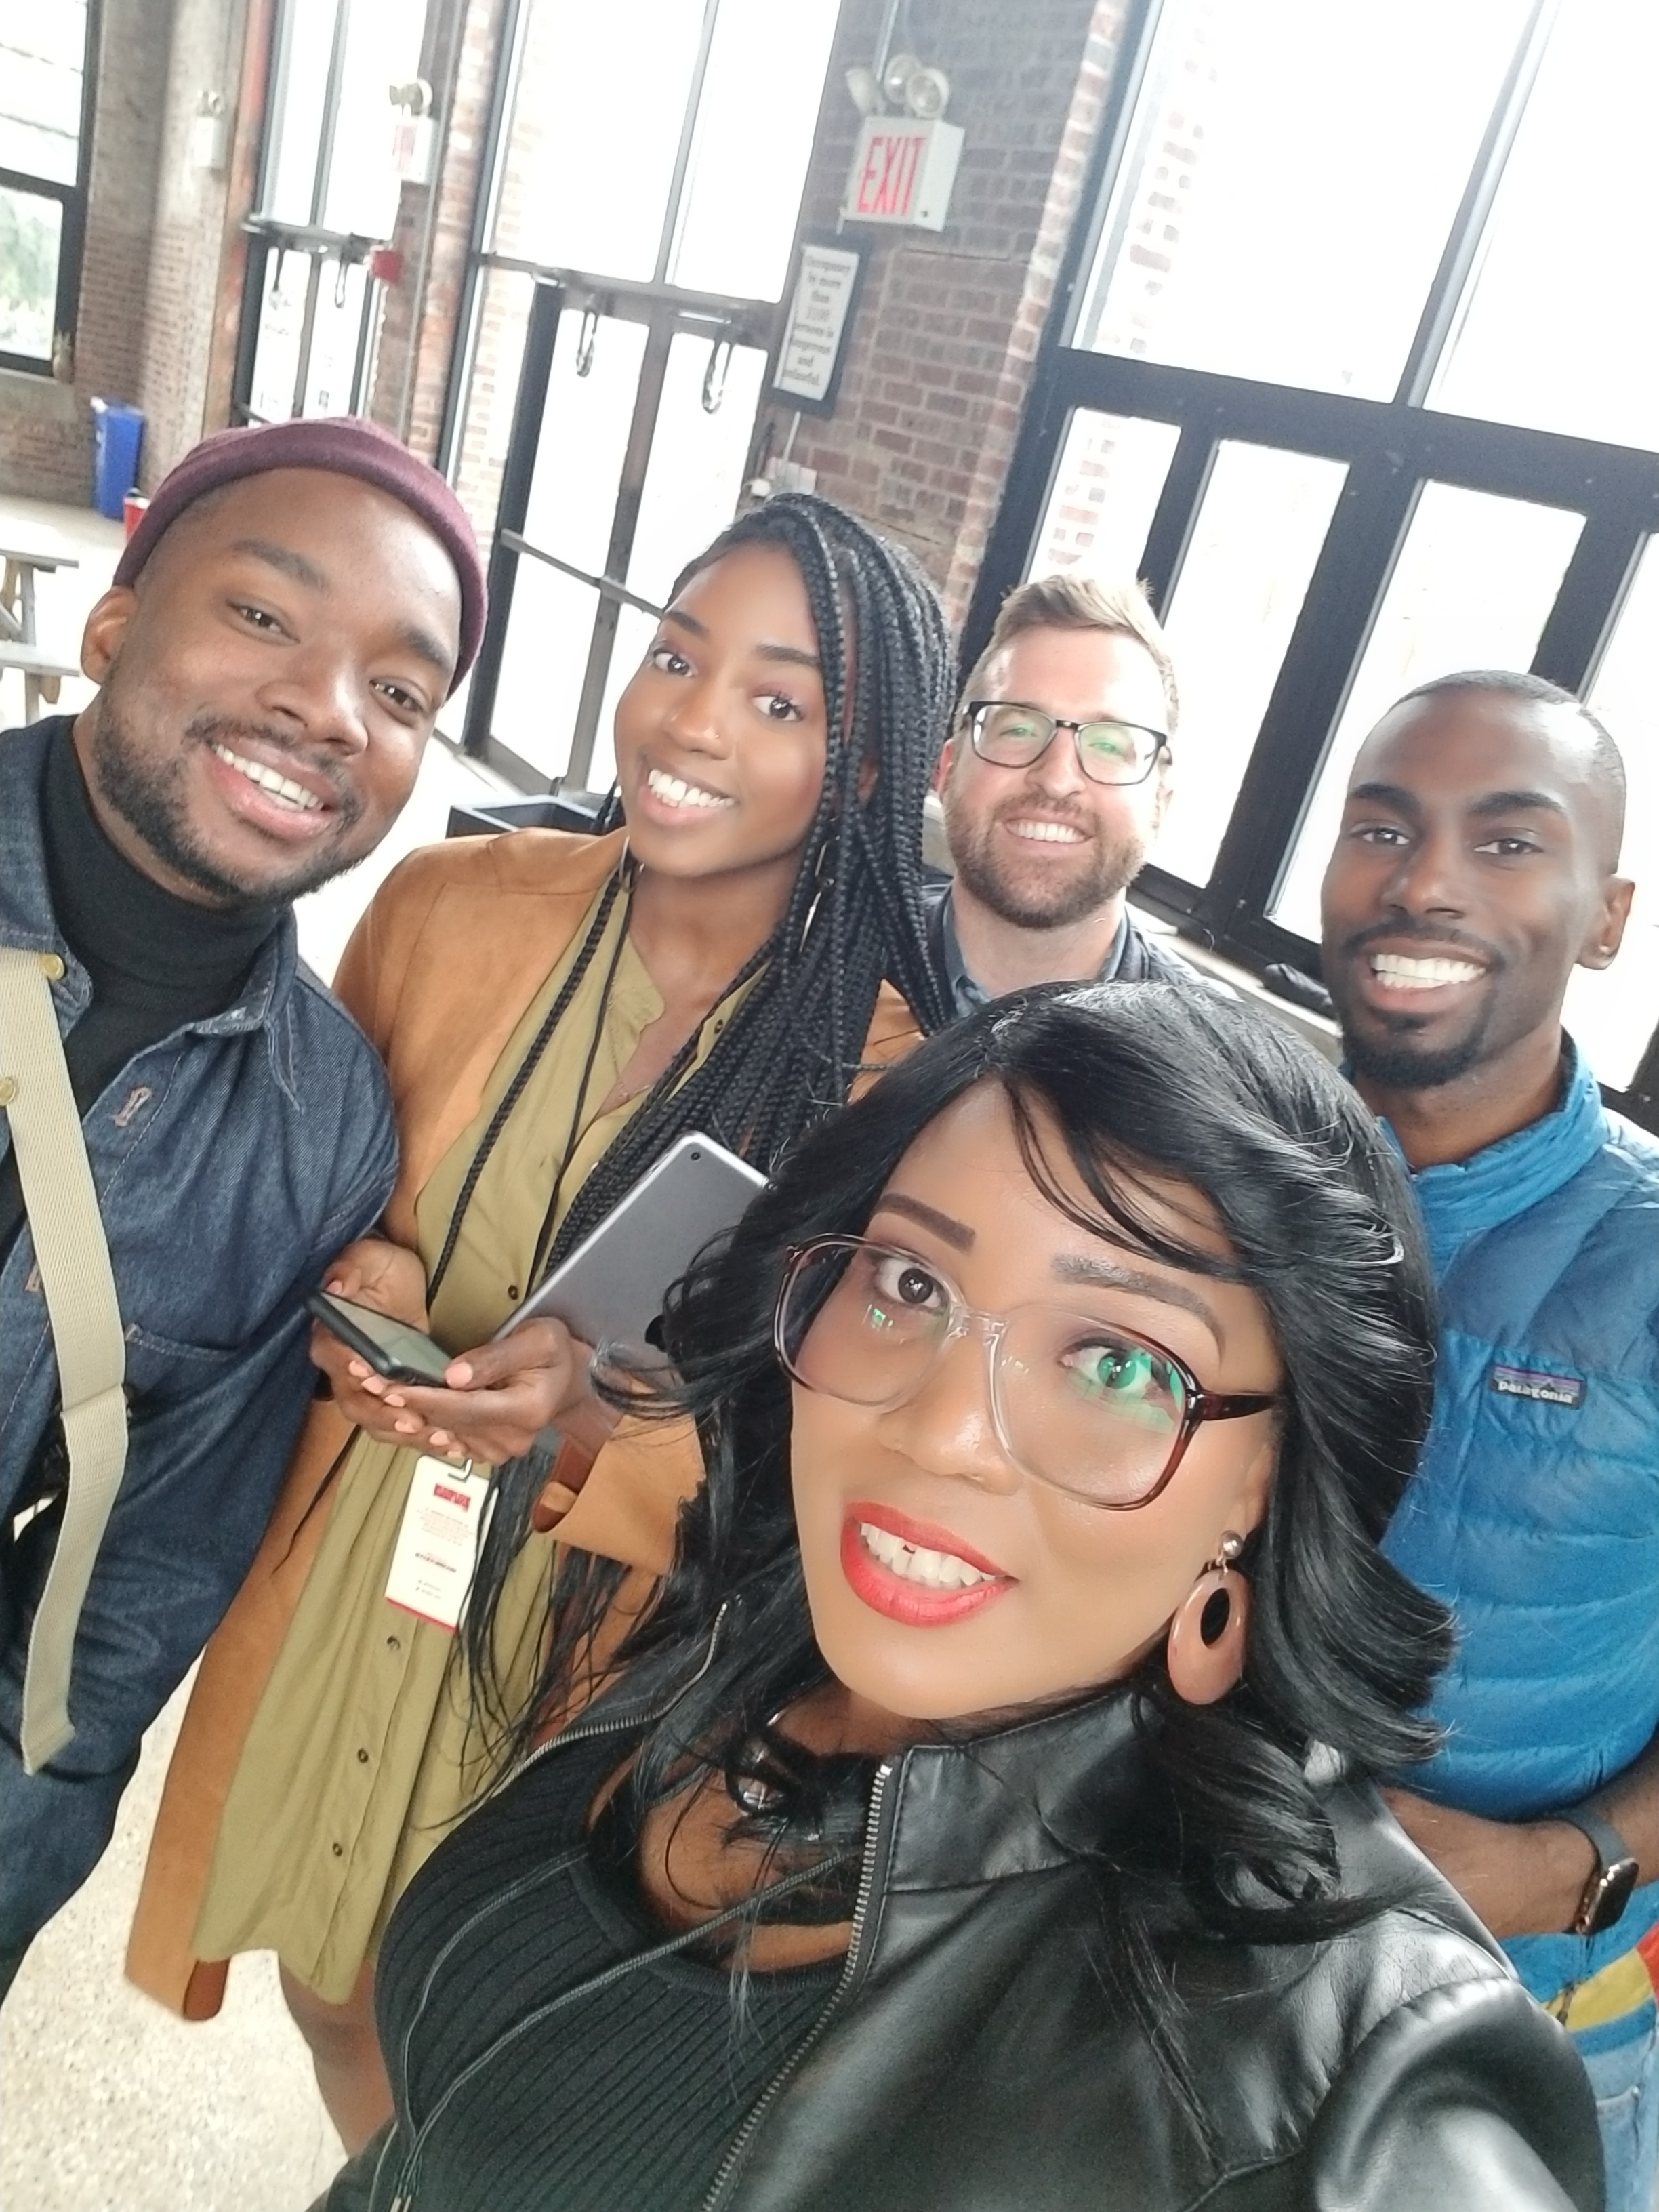 Image: by Nicole (NLLMag) with Squarespace Marketing team and Deray at #CultureCon 2018